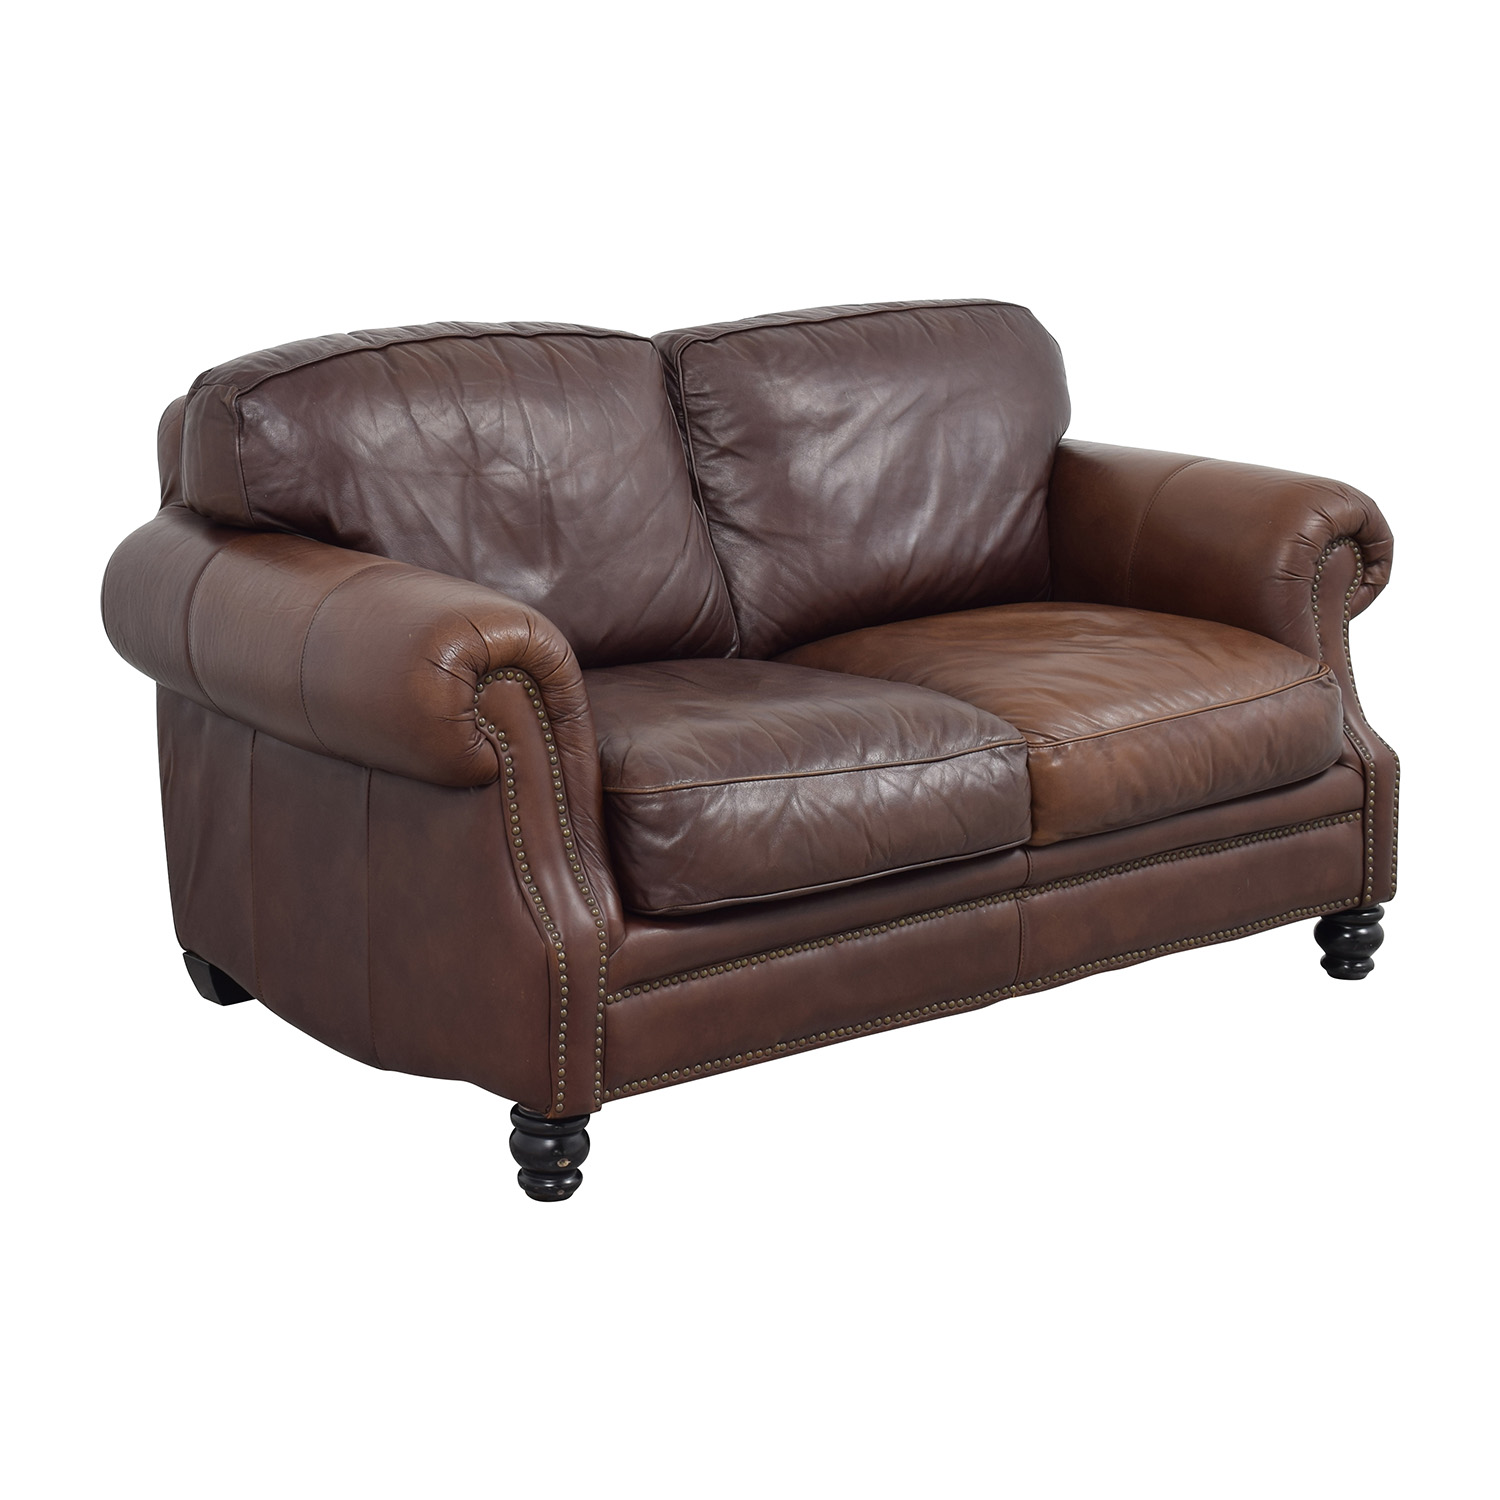 68 off brown leather studded loveseat sofas for Leather studded couch